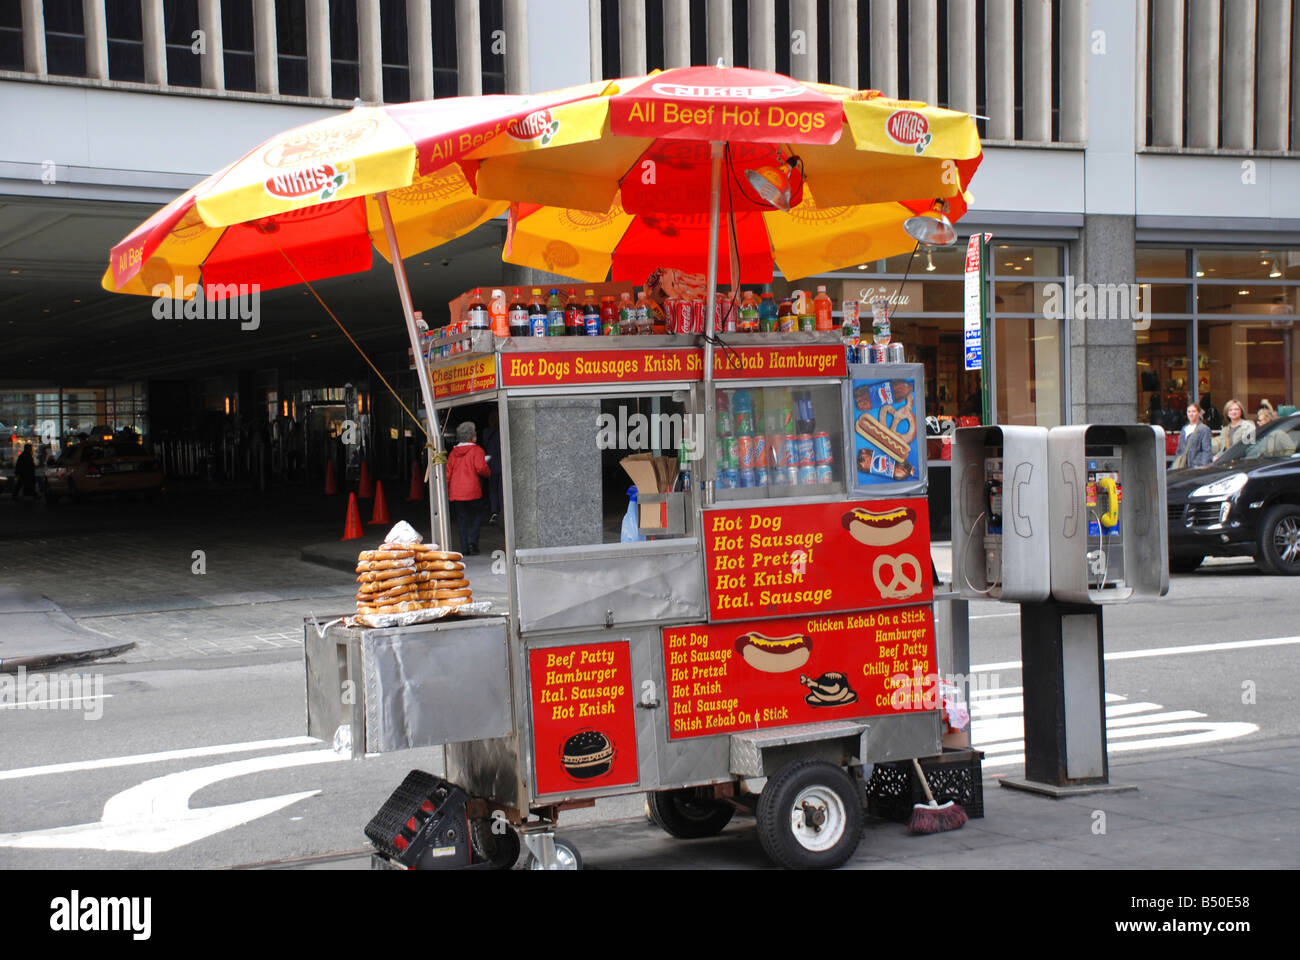 Selling Hot Dogs On The Street Uk